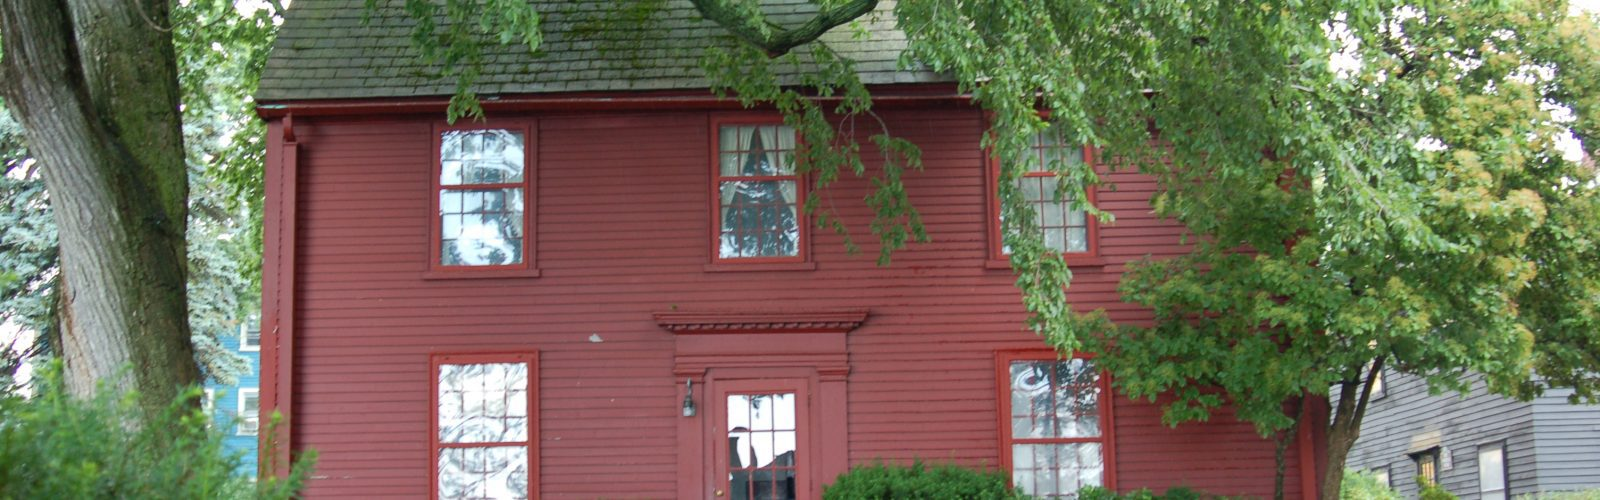 The Nathaniel Hawthorn Birthplace on the campus of The House of the Seven Gables.